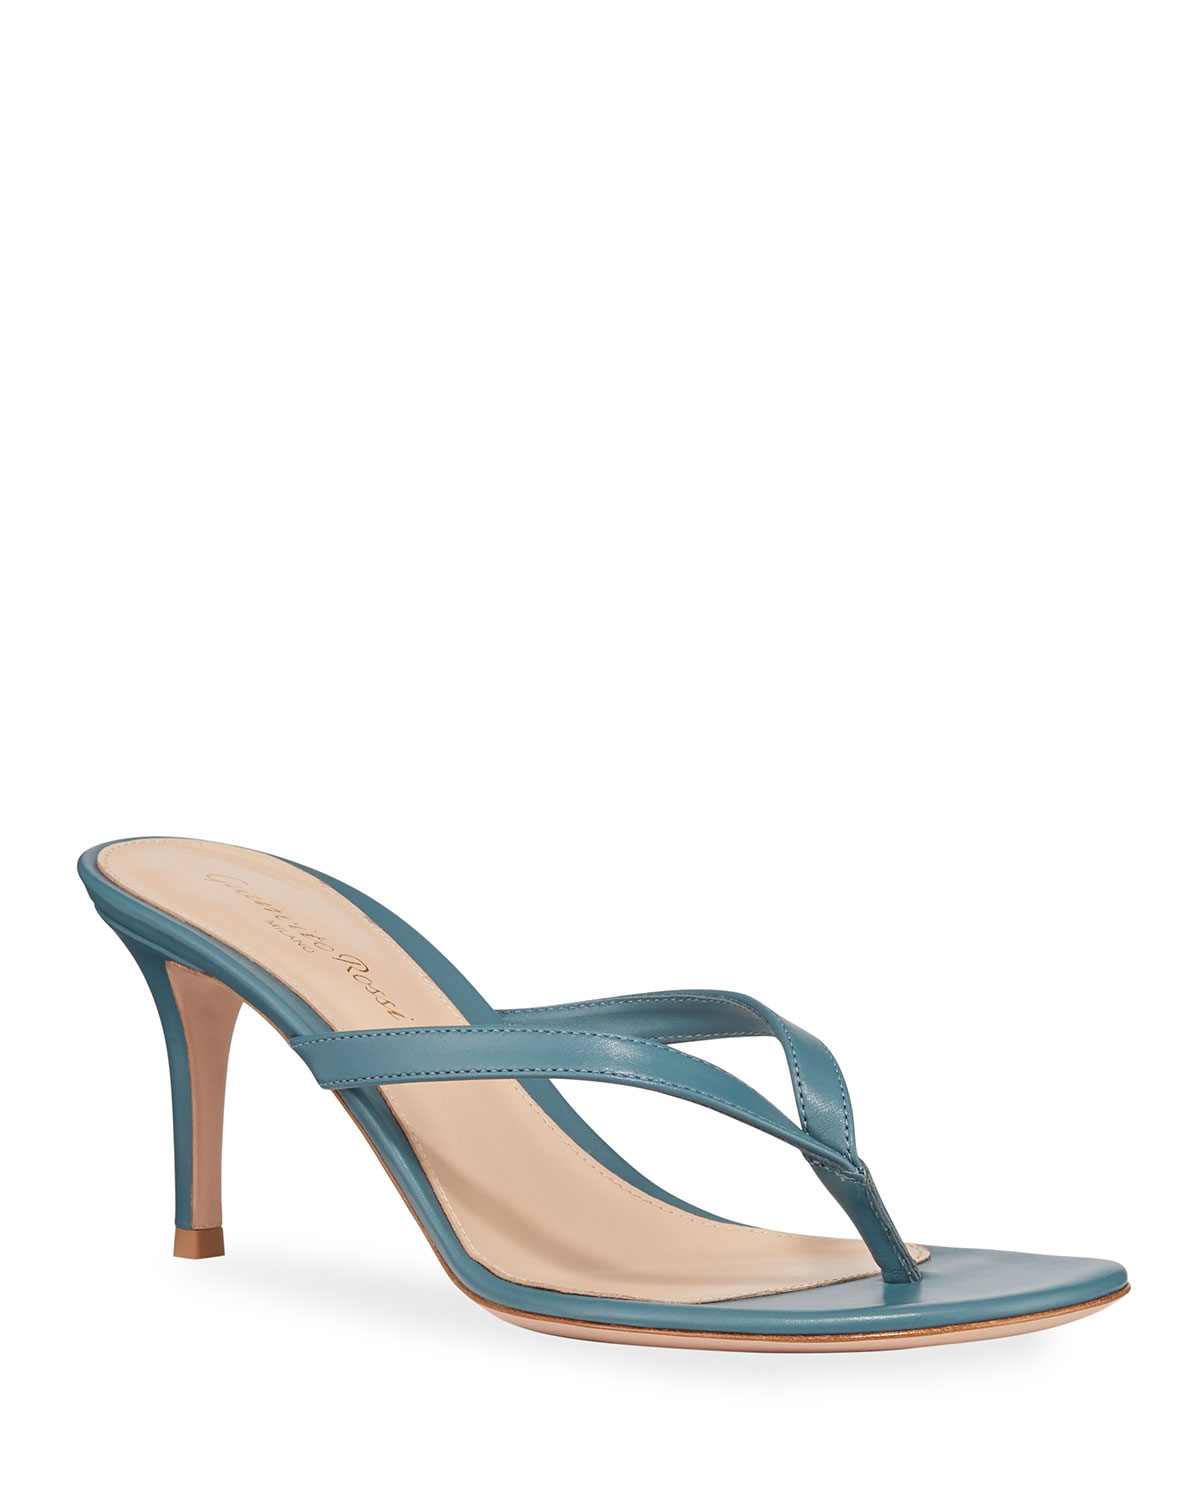 Gianvito Rossi Thong Leather Slide Sandals